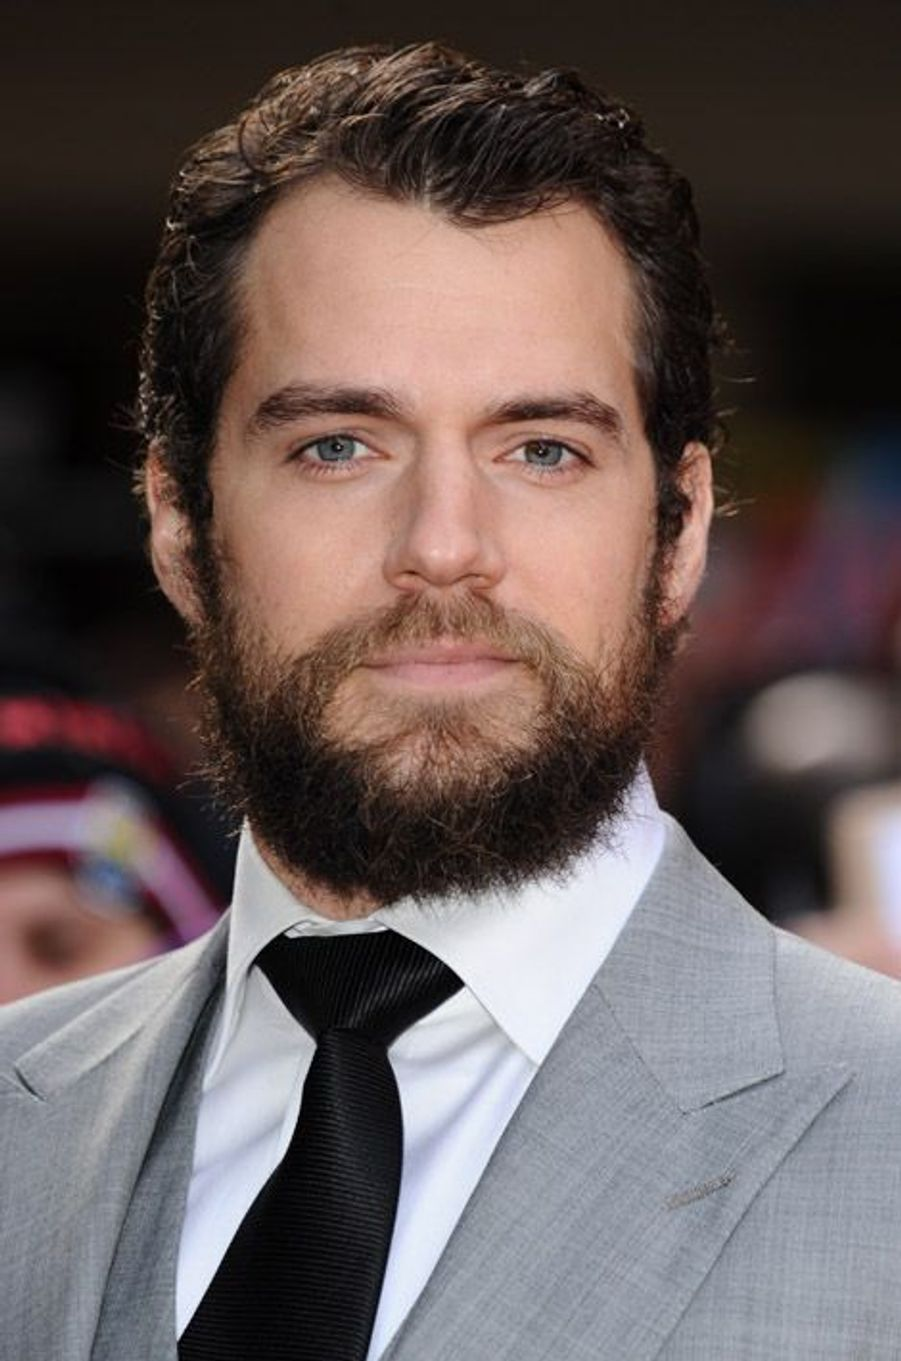 Henry Cavill aux Empire Awards en mars 2015